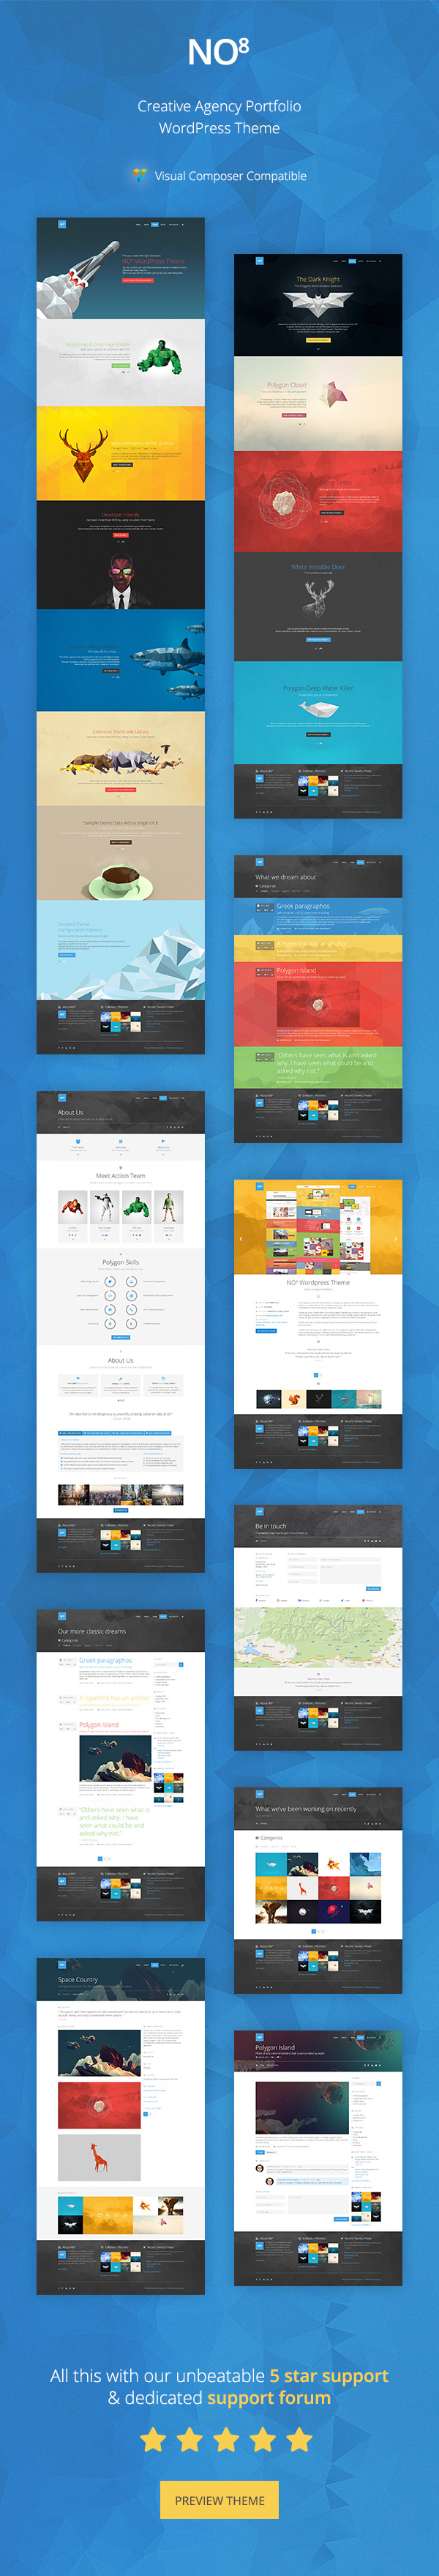 NO8 - Creative Agency Portfolio Theme